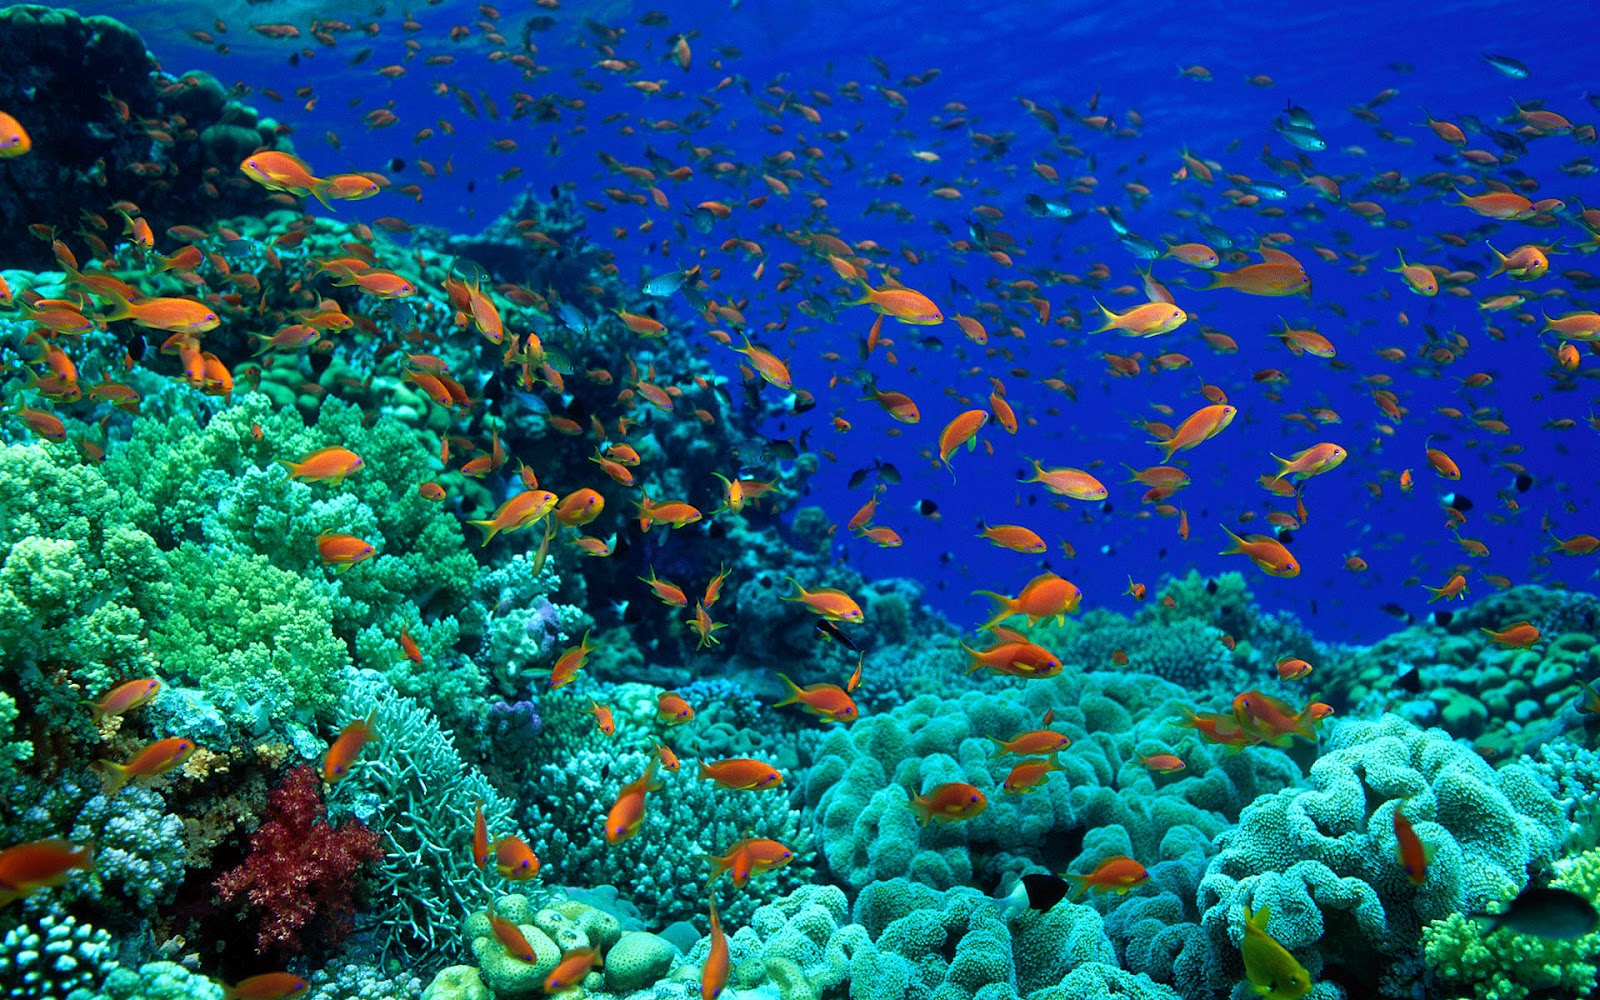 Hd Ocean Sea Life Wallpapers Wallpapersafari